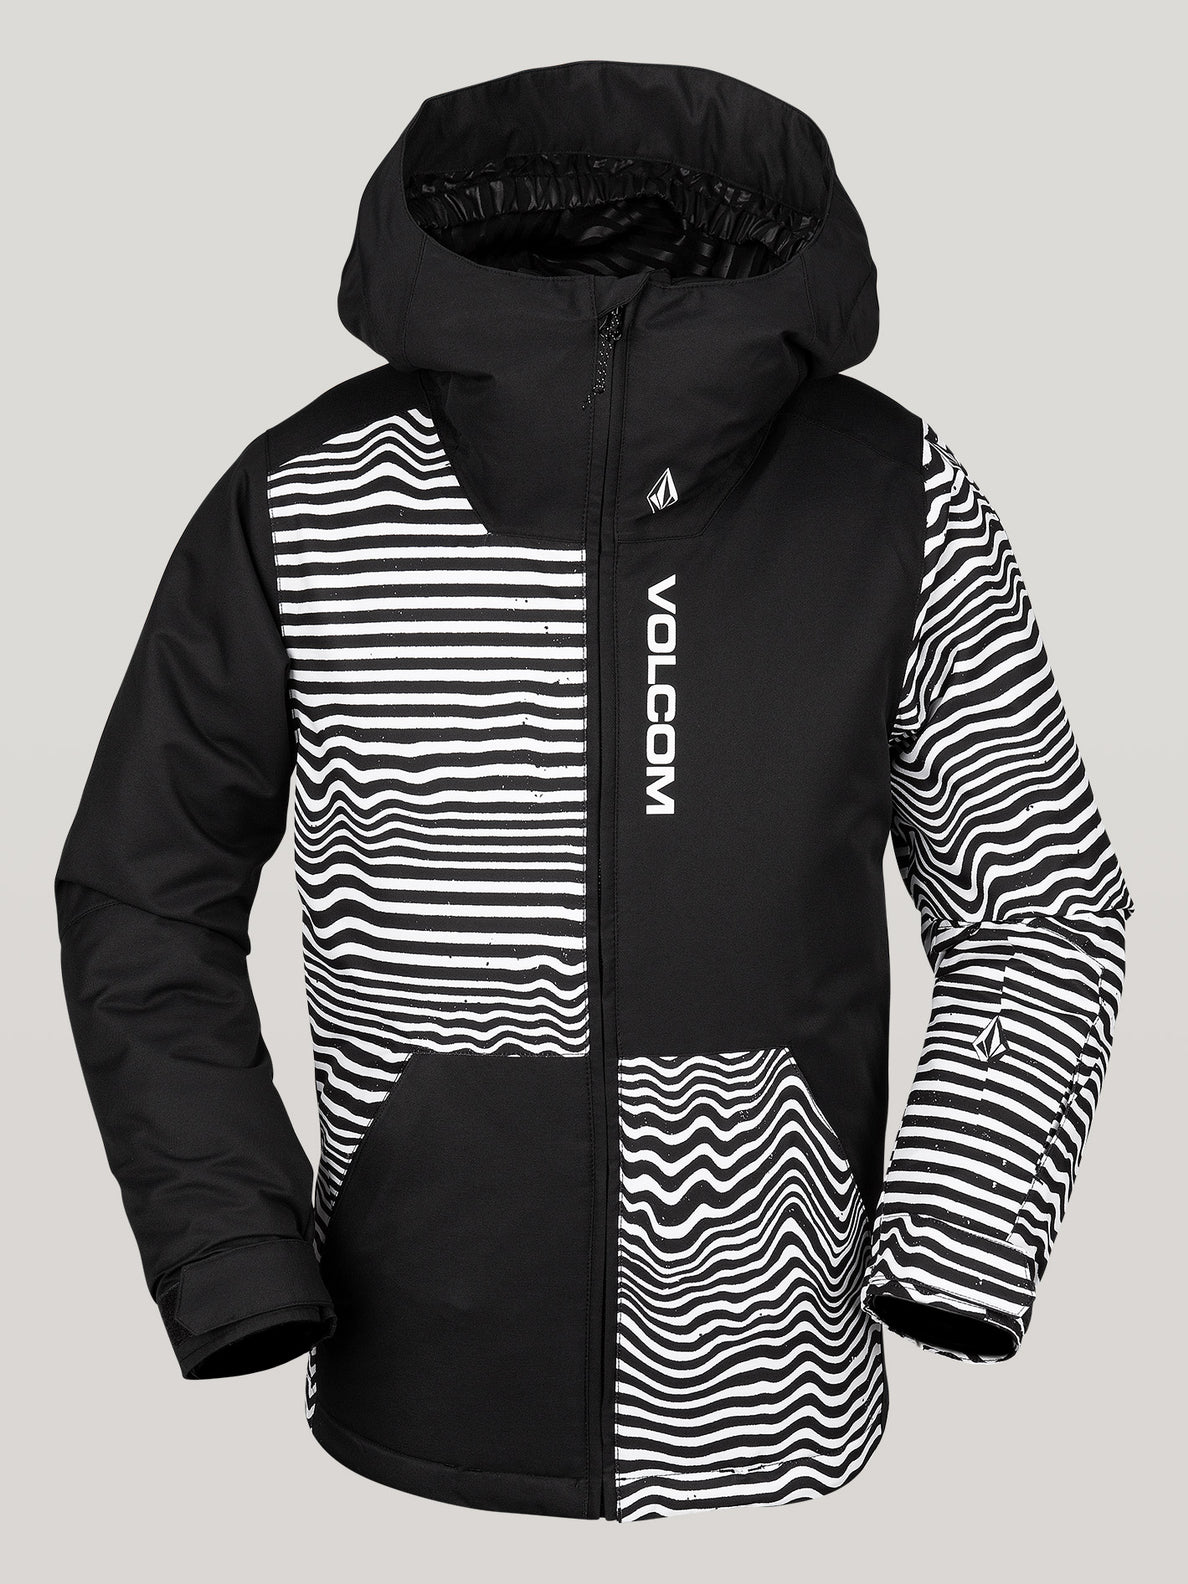 Boys Youth Vernon Ins Jacket - Black Stripe